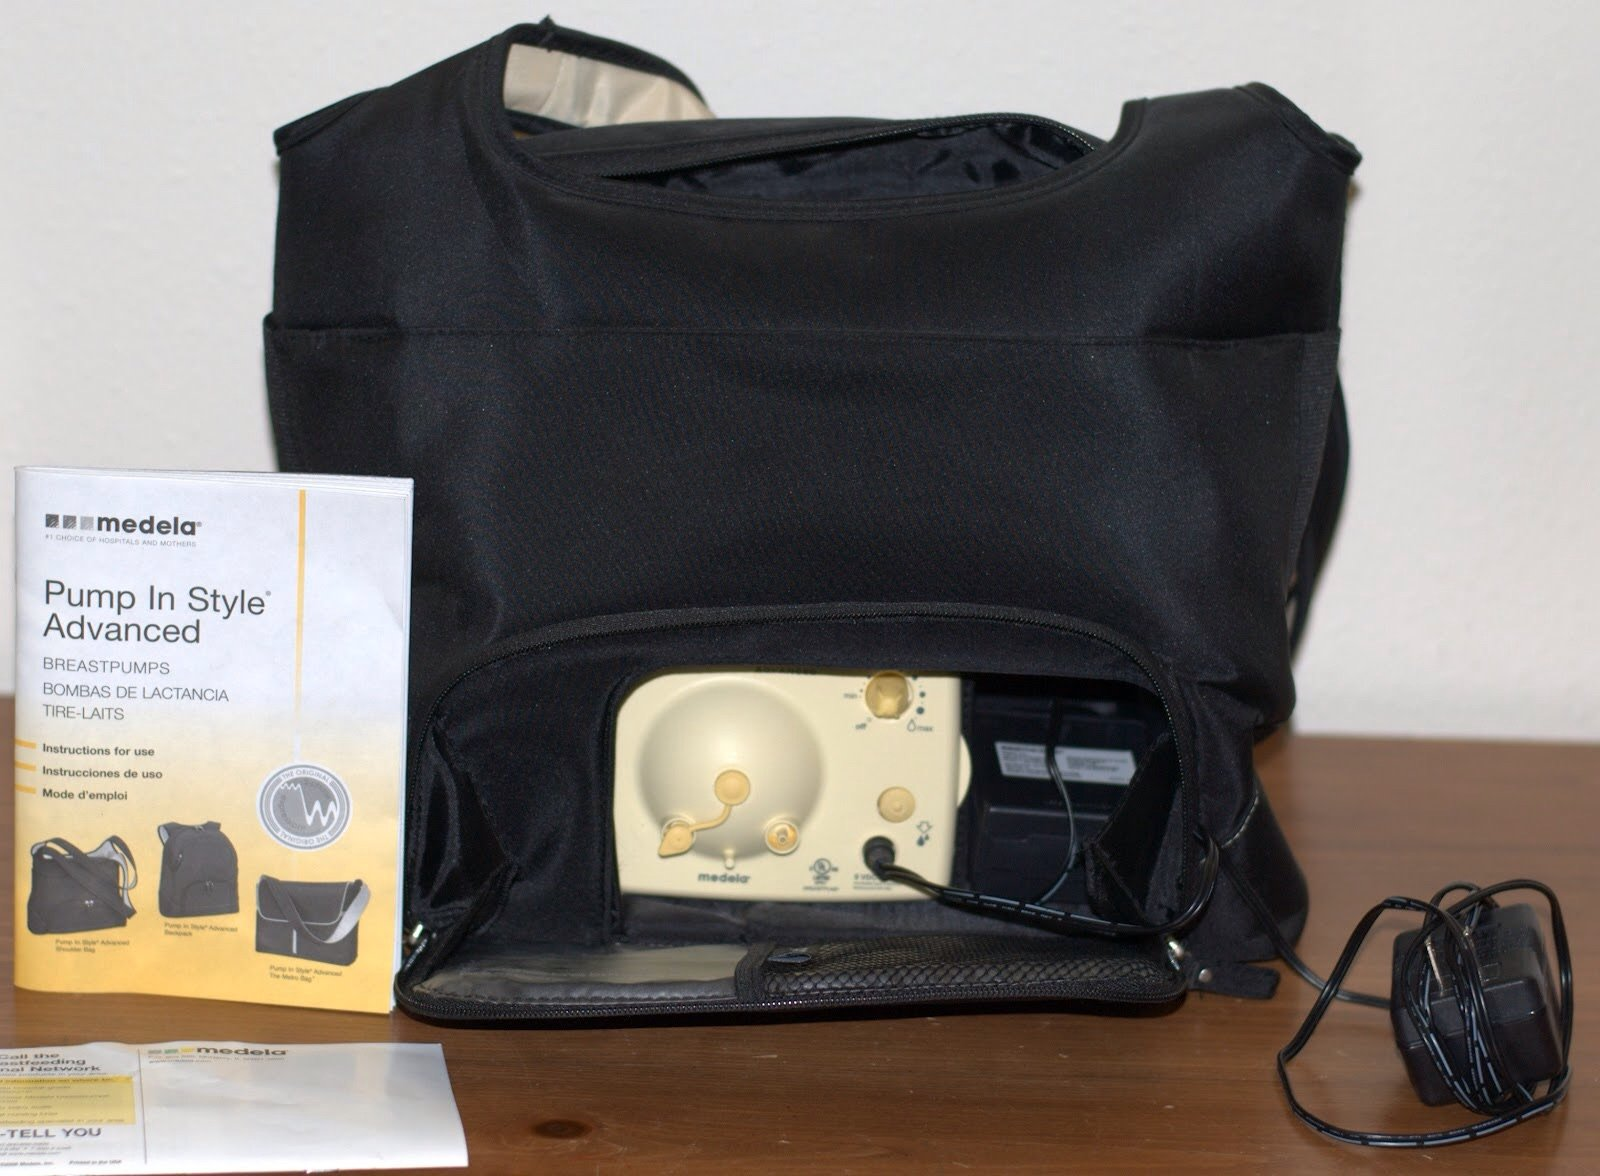 Medela Electric Breastpump - Pump In Style Advanced On-the-Go Tote Set w/ Free Accessories